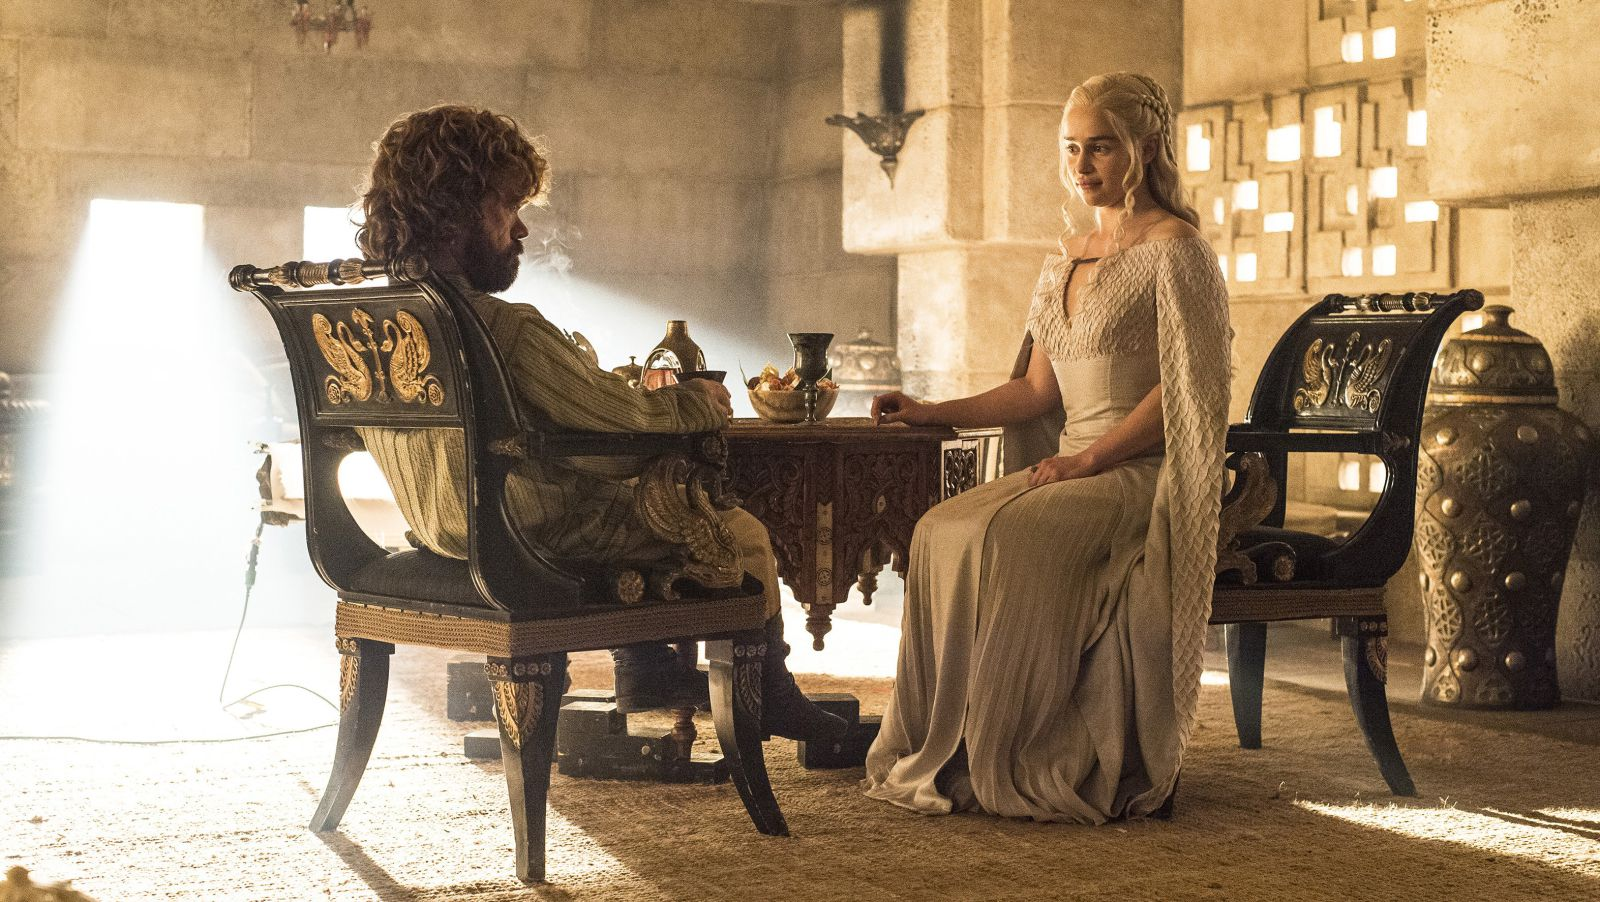 Game Of Thrones Author Has Good News For Fans Of TV Show %name